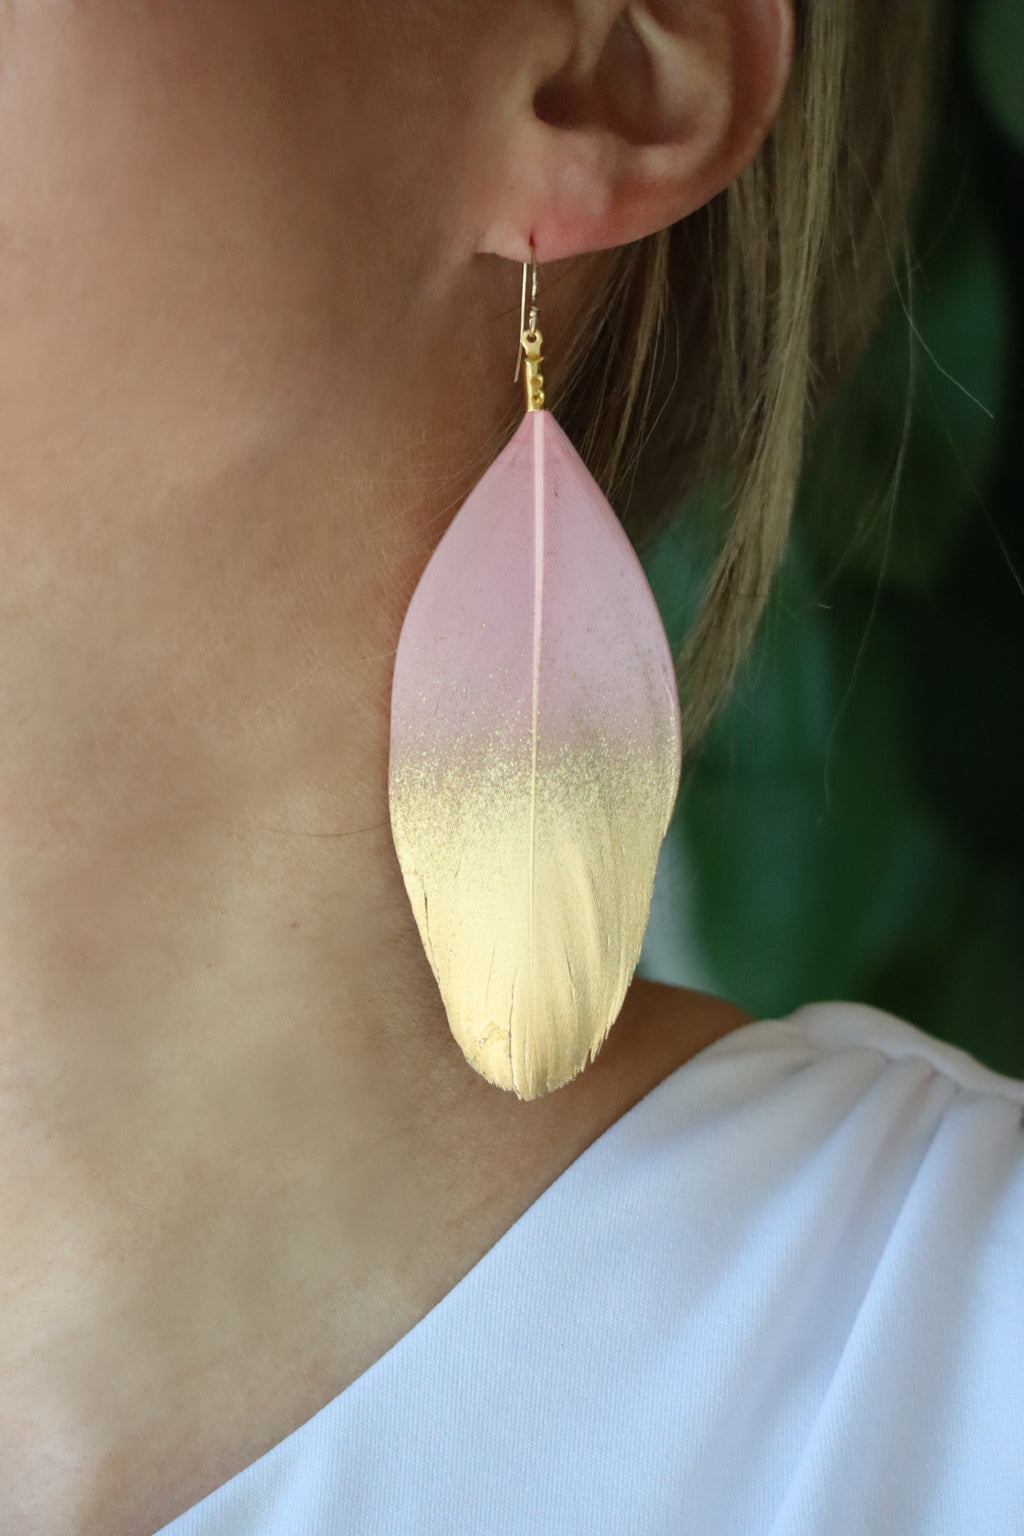 FLAVIA'S FEARLESS FEATHER EARRINGS - MAUVE & WHITE